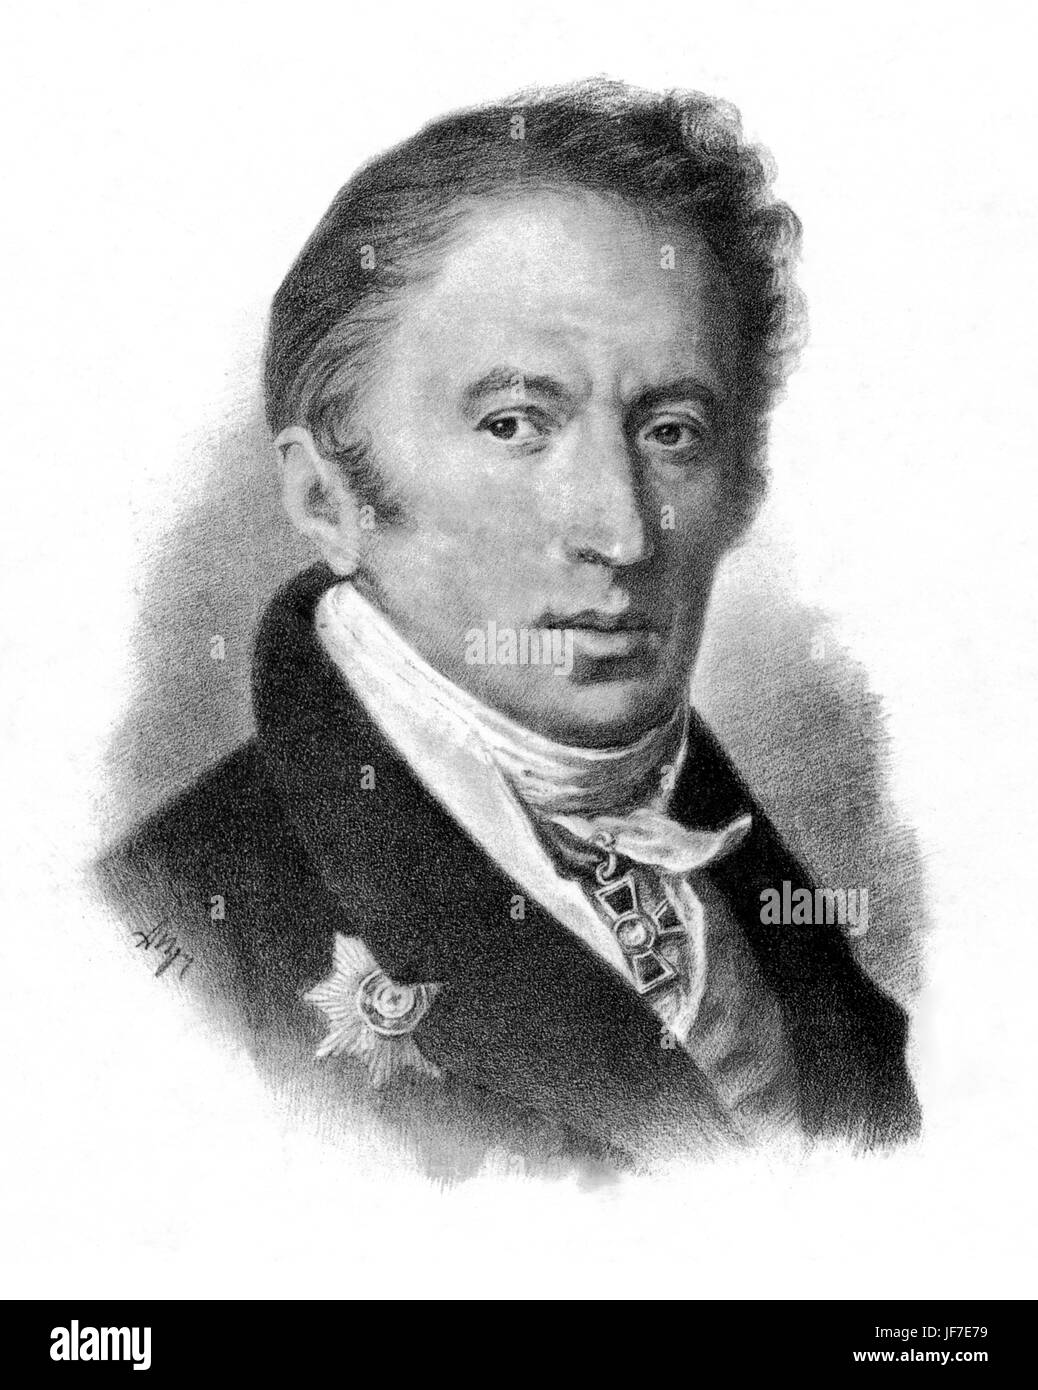 Nikolai Mikhailovich Karamzin - portrait of the Russian author. 1 December 1766 -22 May 1826.  Author of History Stock Photo